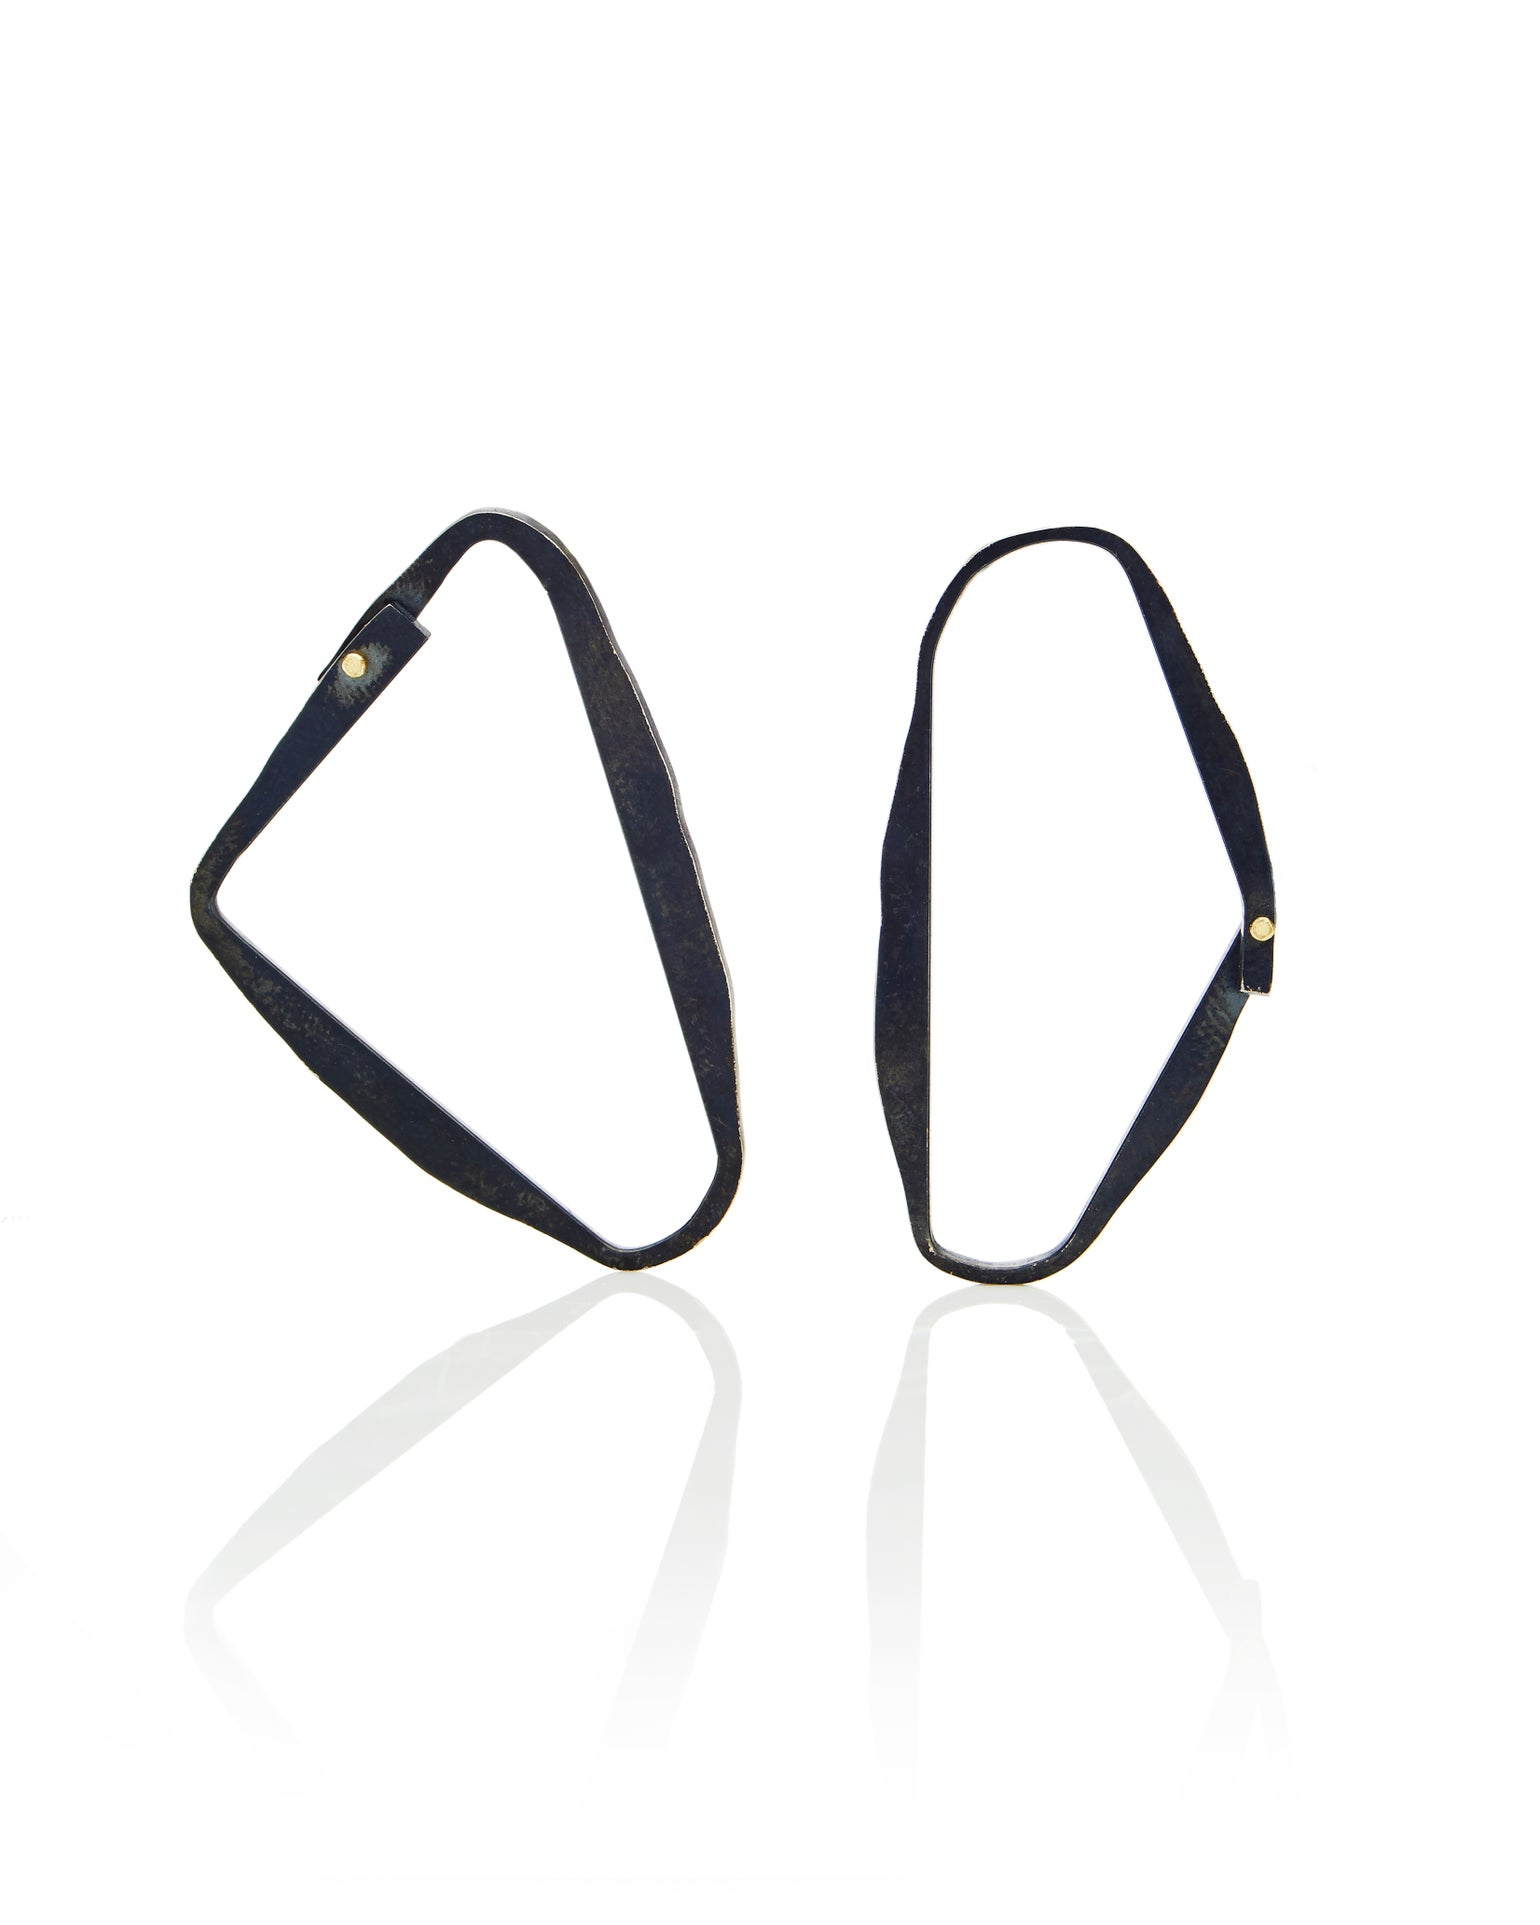 Image of Asymmetric paired blackened silver loop earrings with 18k gold rivet